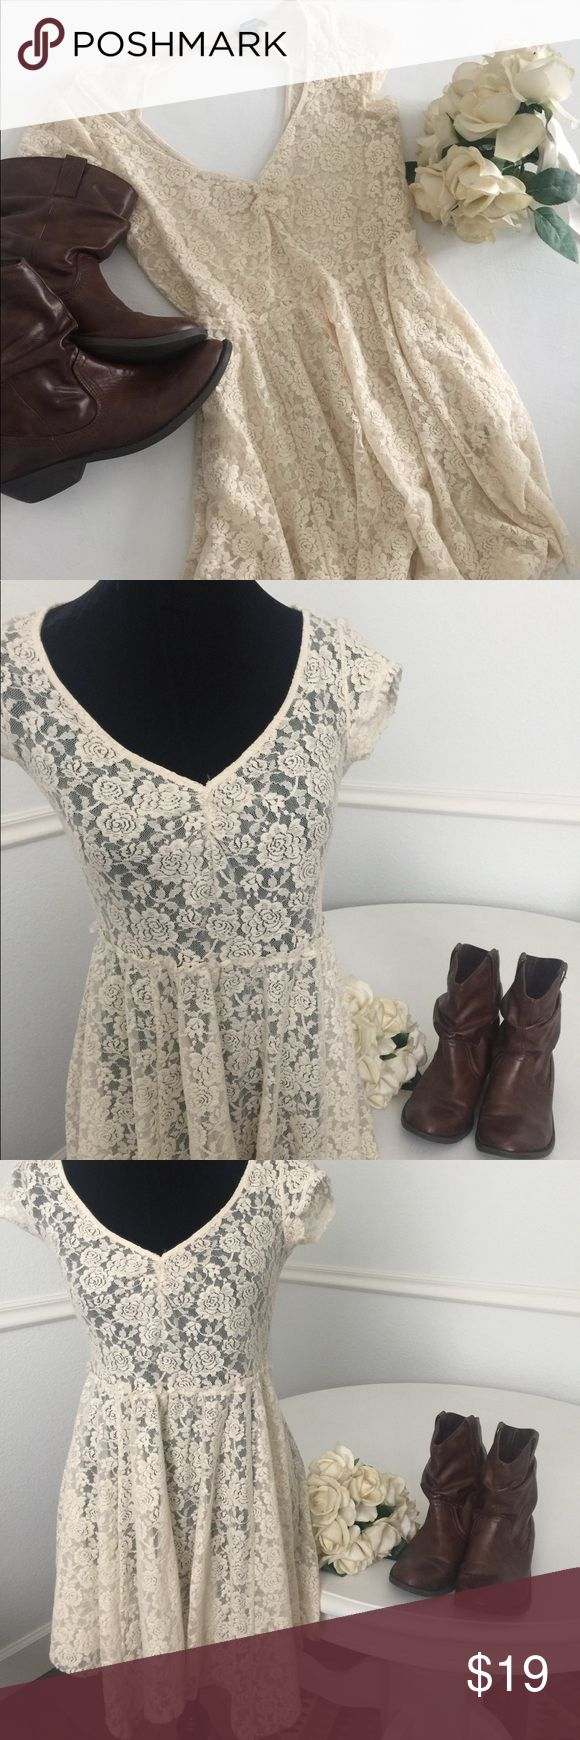 American Eagle lace cutout dress! Size Medium American Eagle Outfitters lace cutout out dress. Size Medium. Completely mesh and see through! Pair with a bralette or slip! Great for layering for that country chic look! American Eagle Outfitters Dresses Midi